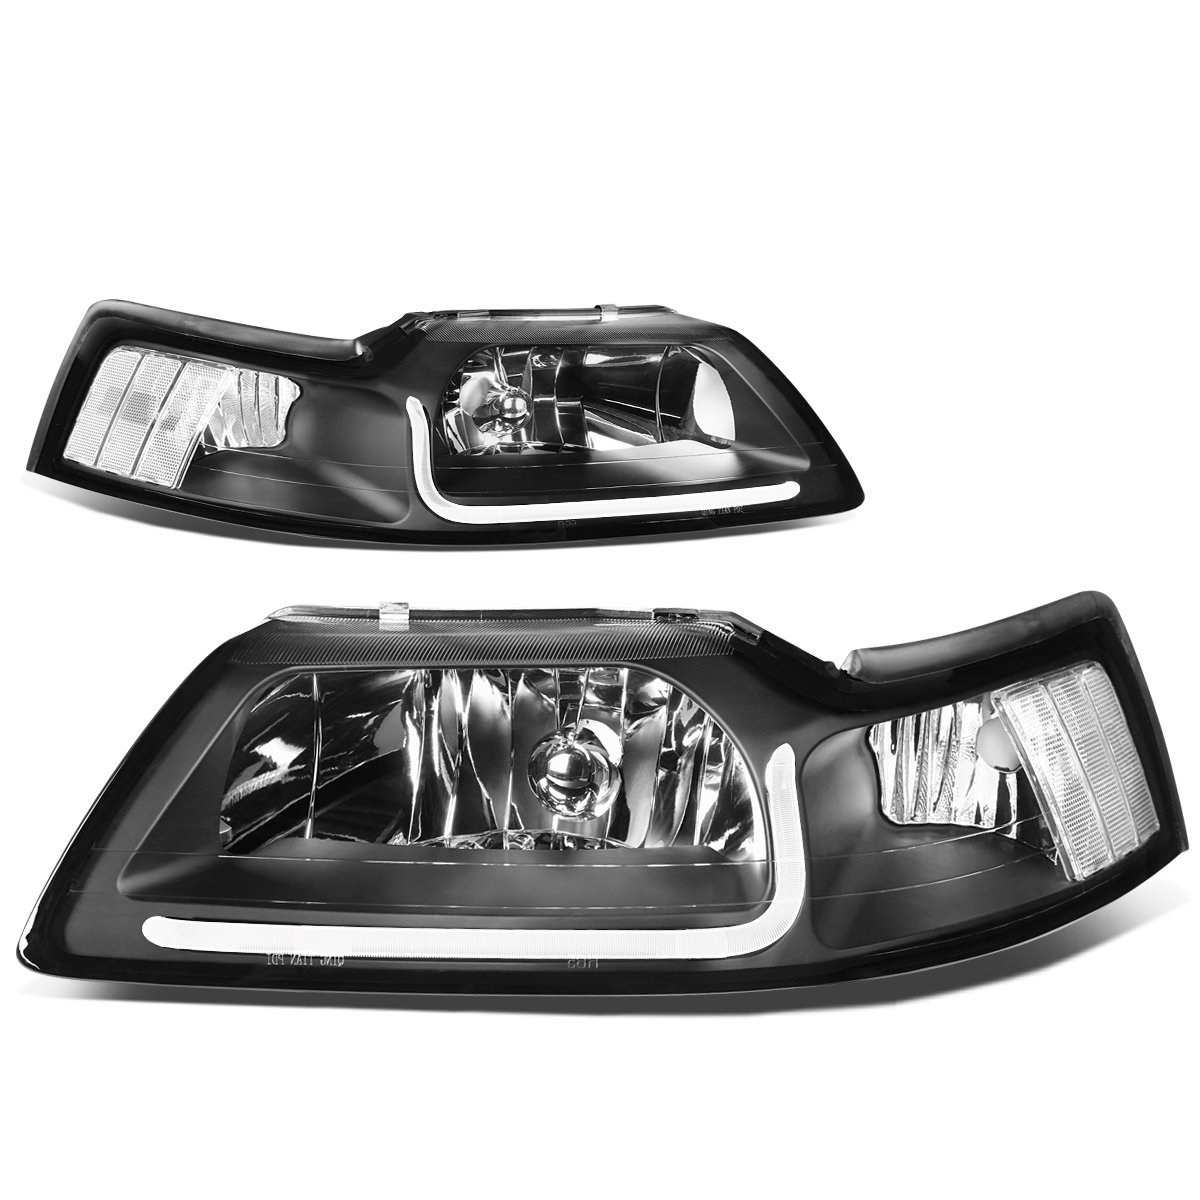 99 04 ford mustang led drl bar headlights black clear 99 04 ford mustang led drl bar